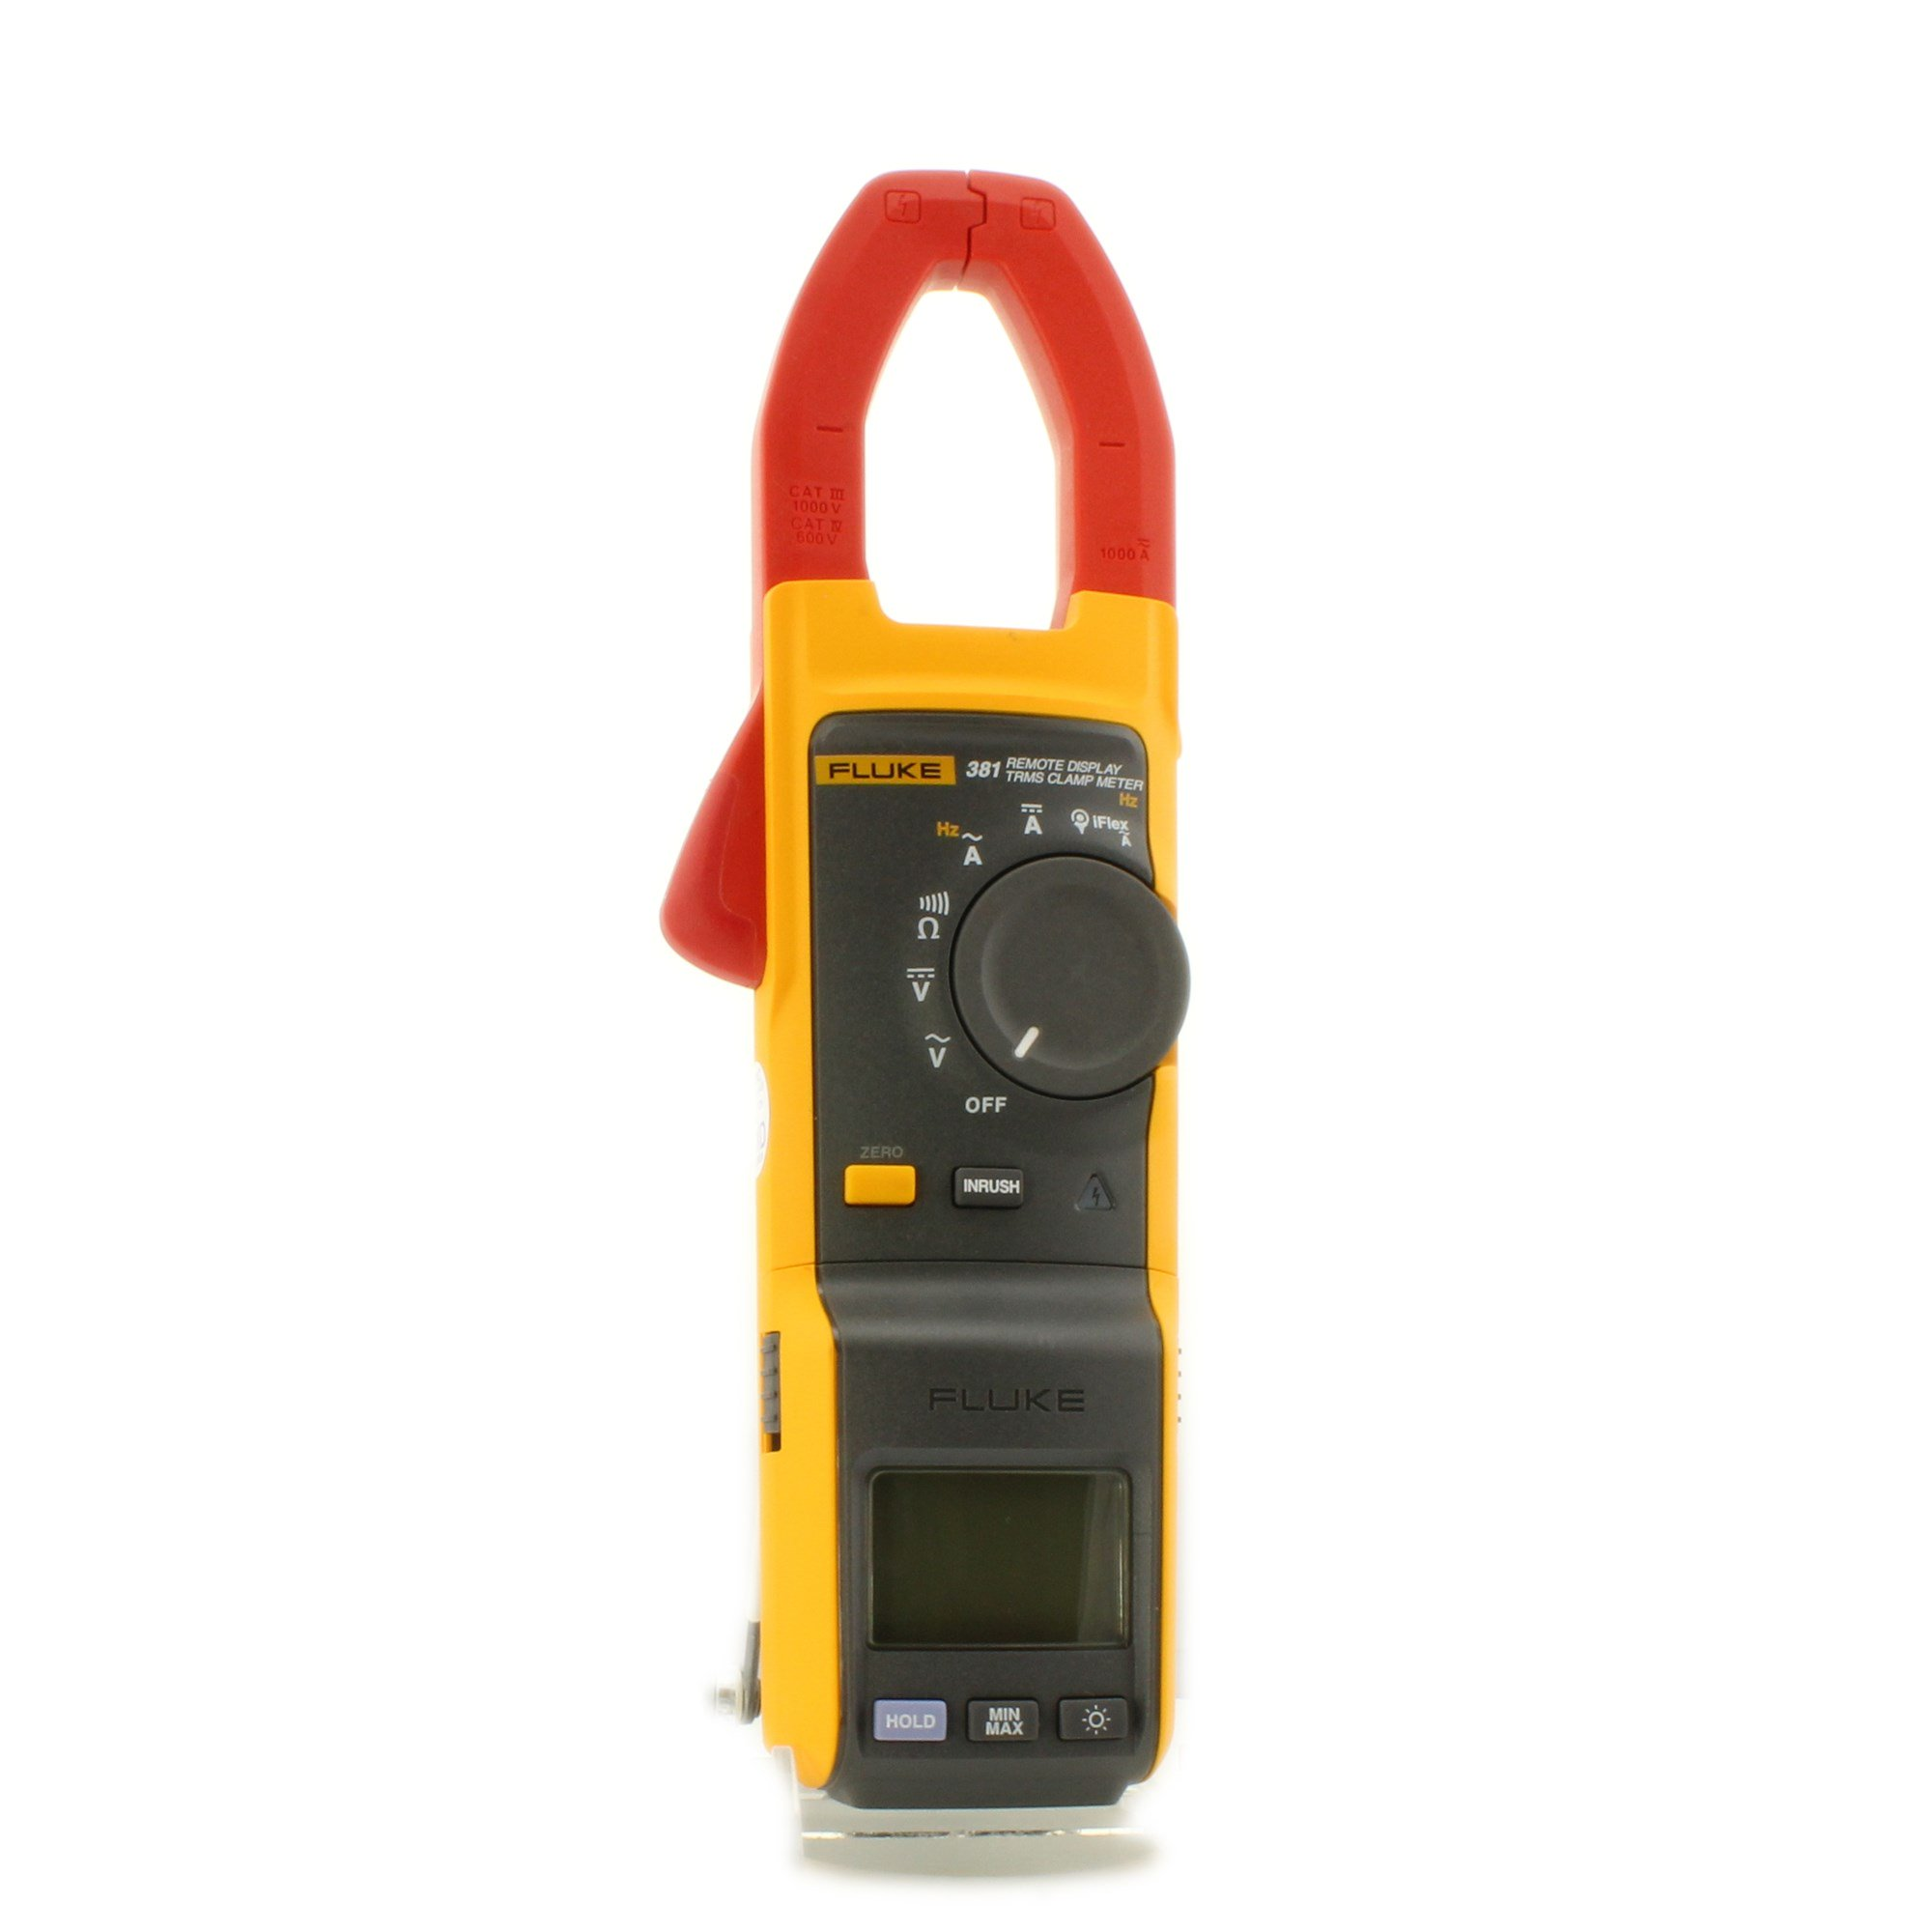 fluke 381 remote display true rms ac dc clamp meter with iflex rh tequipment net Fluke 10 Multimeter Manual Fluke Y8100 Current Probe Manual